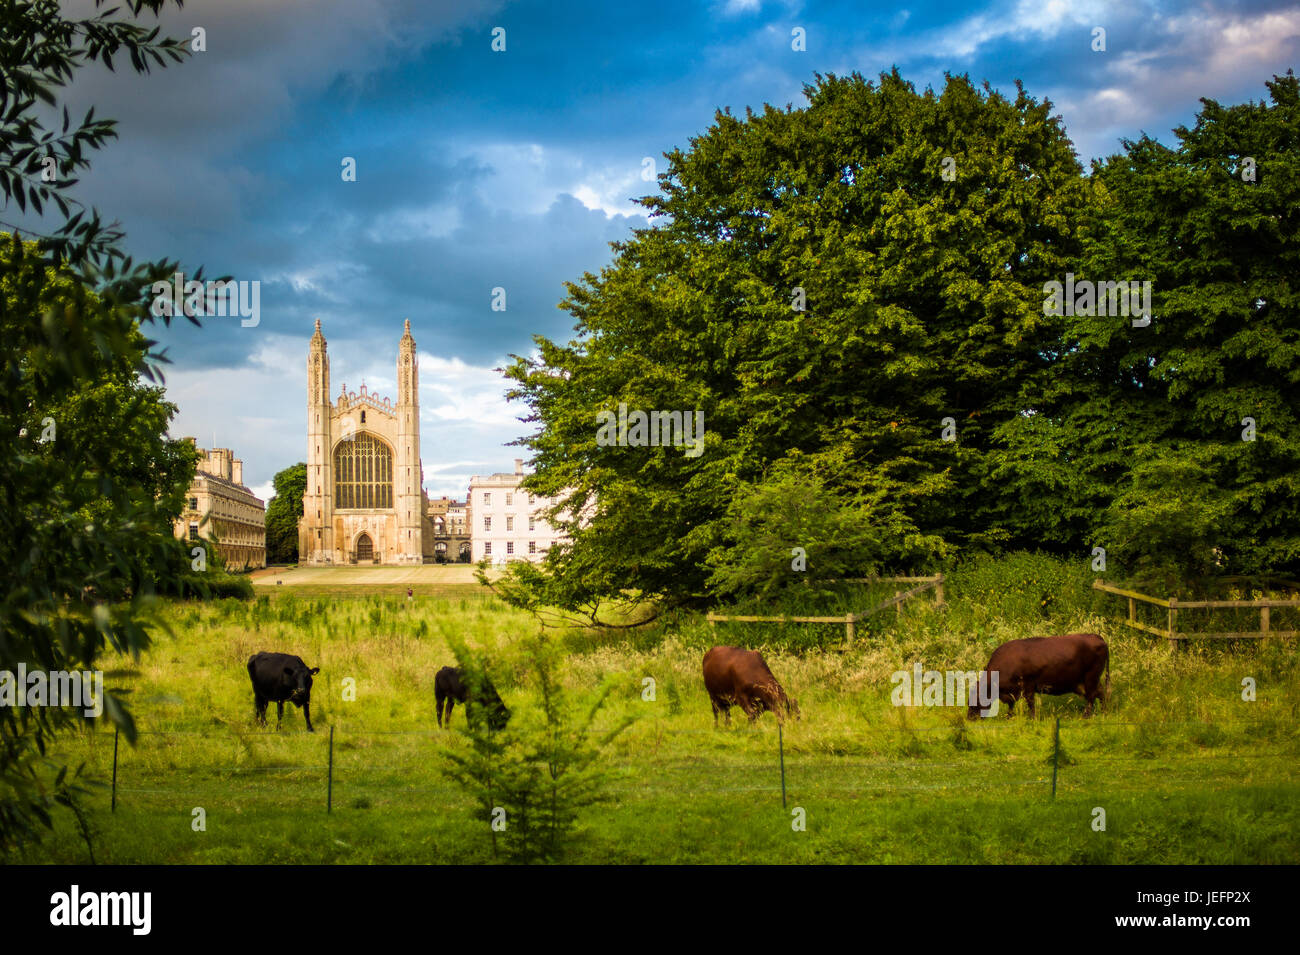 Kings College Chapel, a classic view across the Backs towards Kings College and Clare College, parts of the University - Stock Image